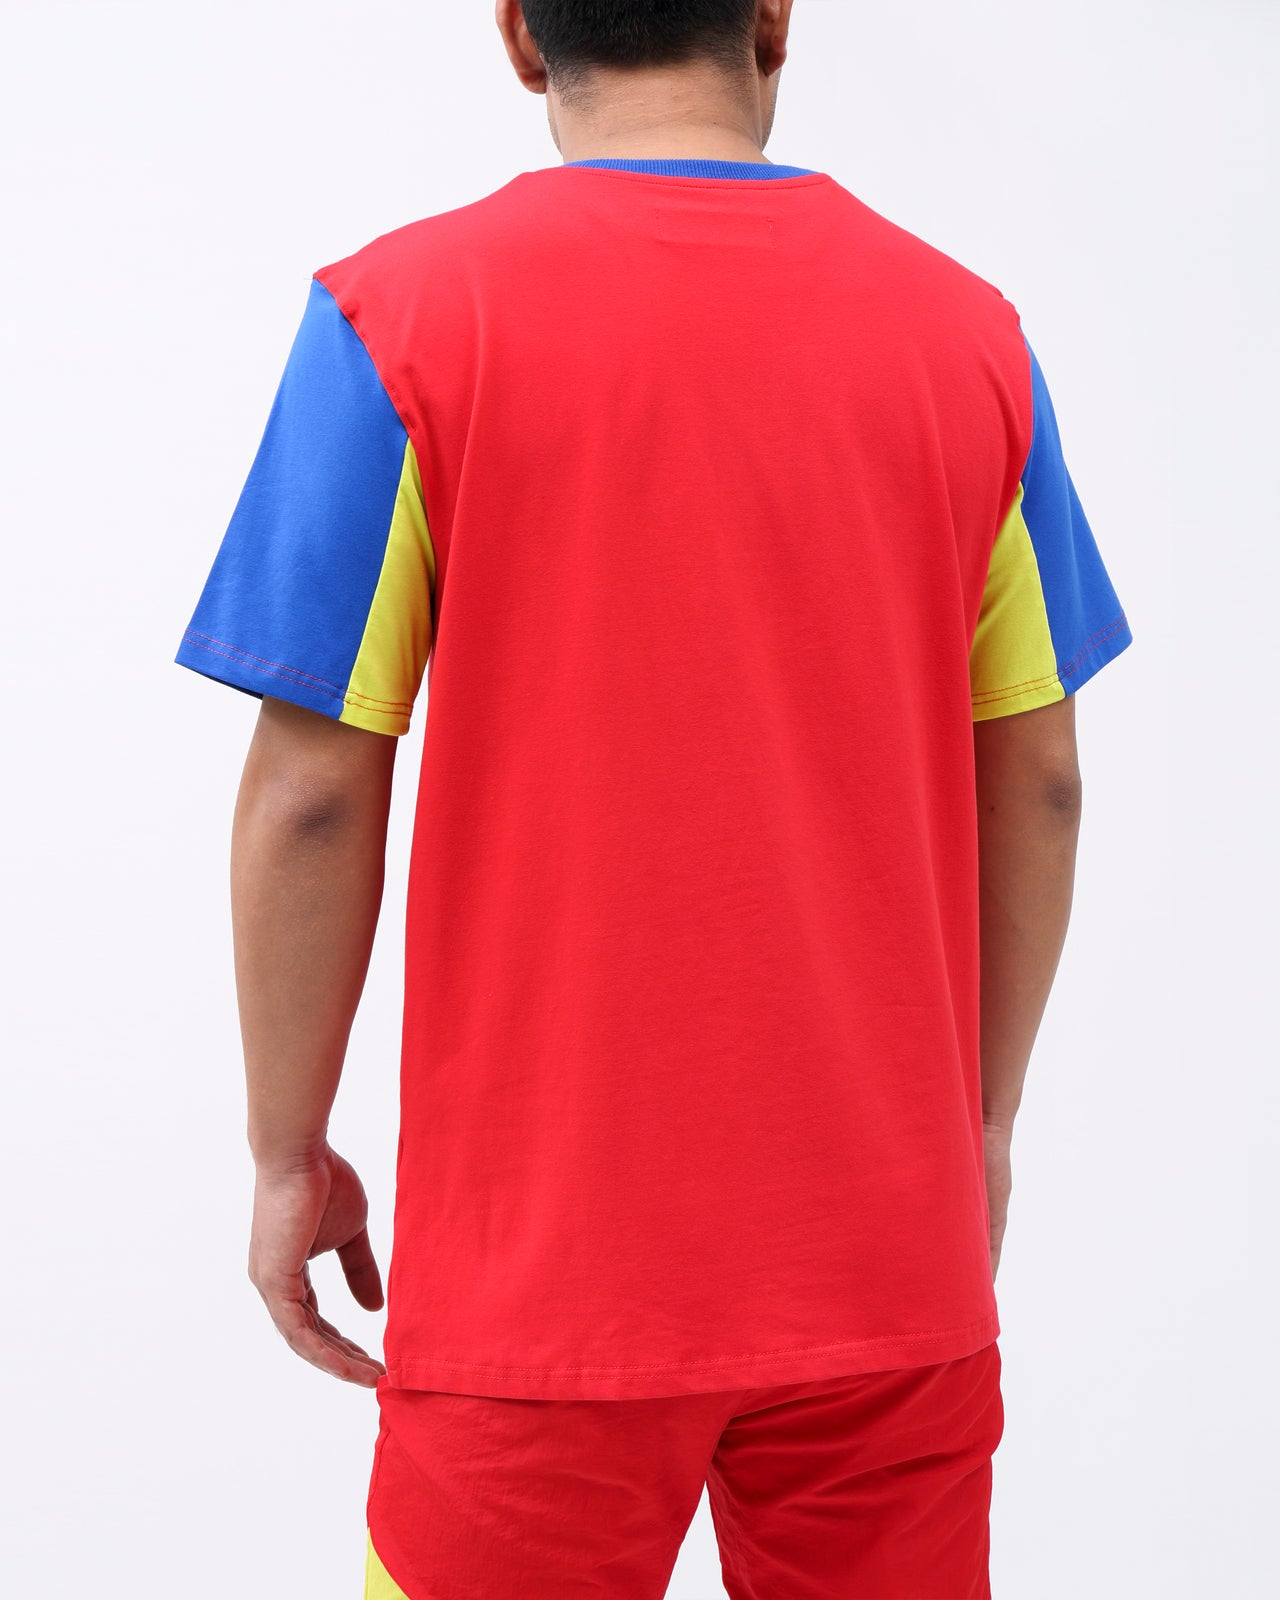 FUTURE OF NEON SHORT WAVE SHIRT - Color: RED